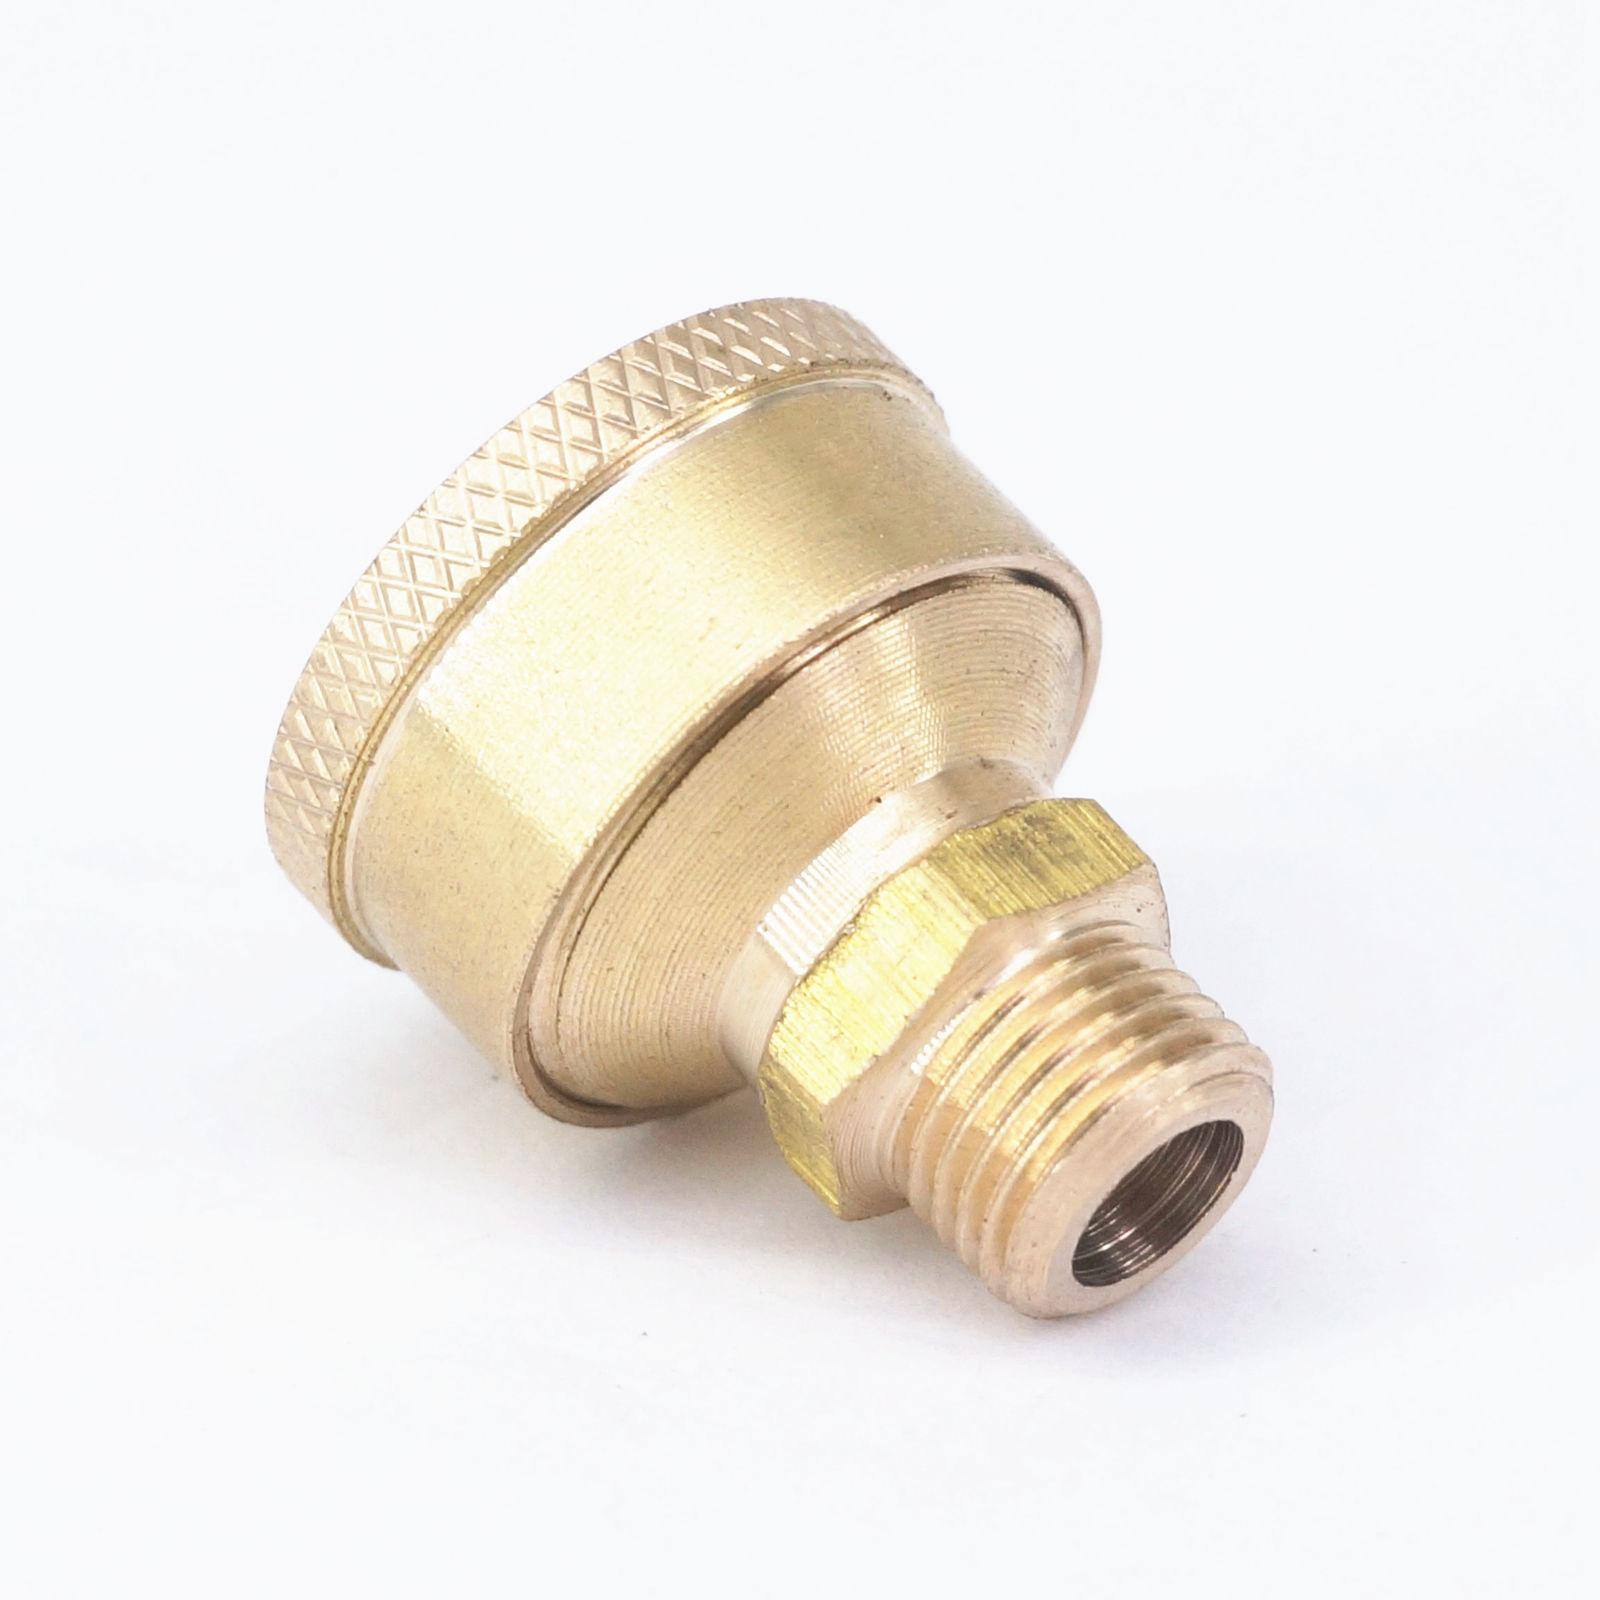 M10 x 1mm 3ml Brass Grase Oil Cup Oiler Screw Cap Hit & Miss Gas Steam Tractor Fuel Engines Motor